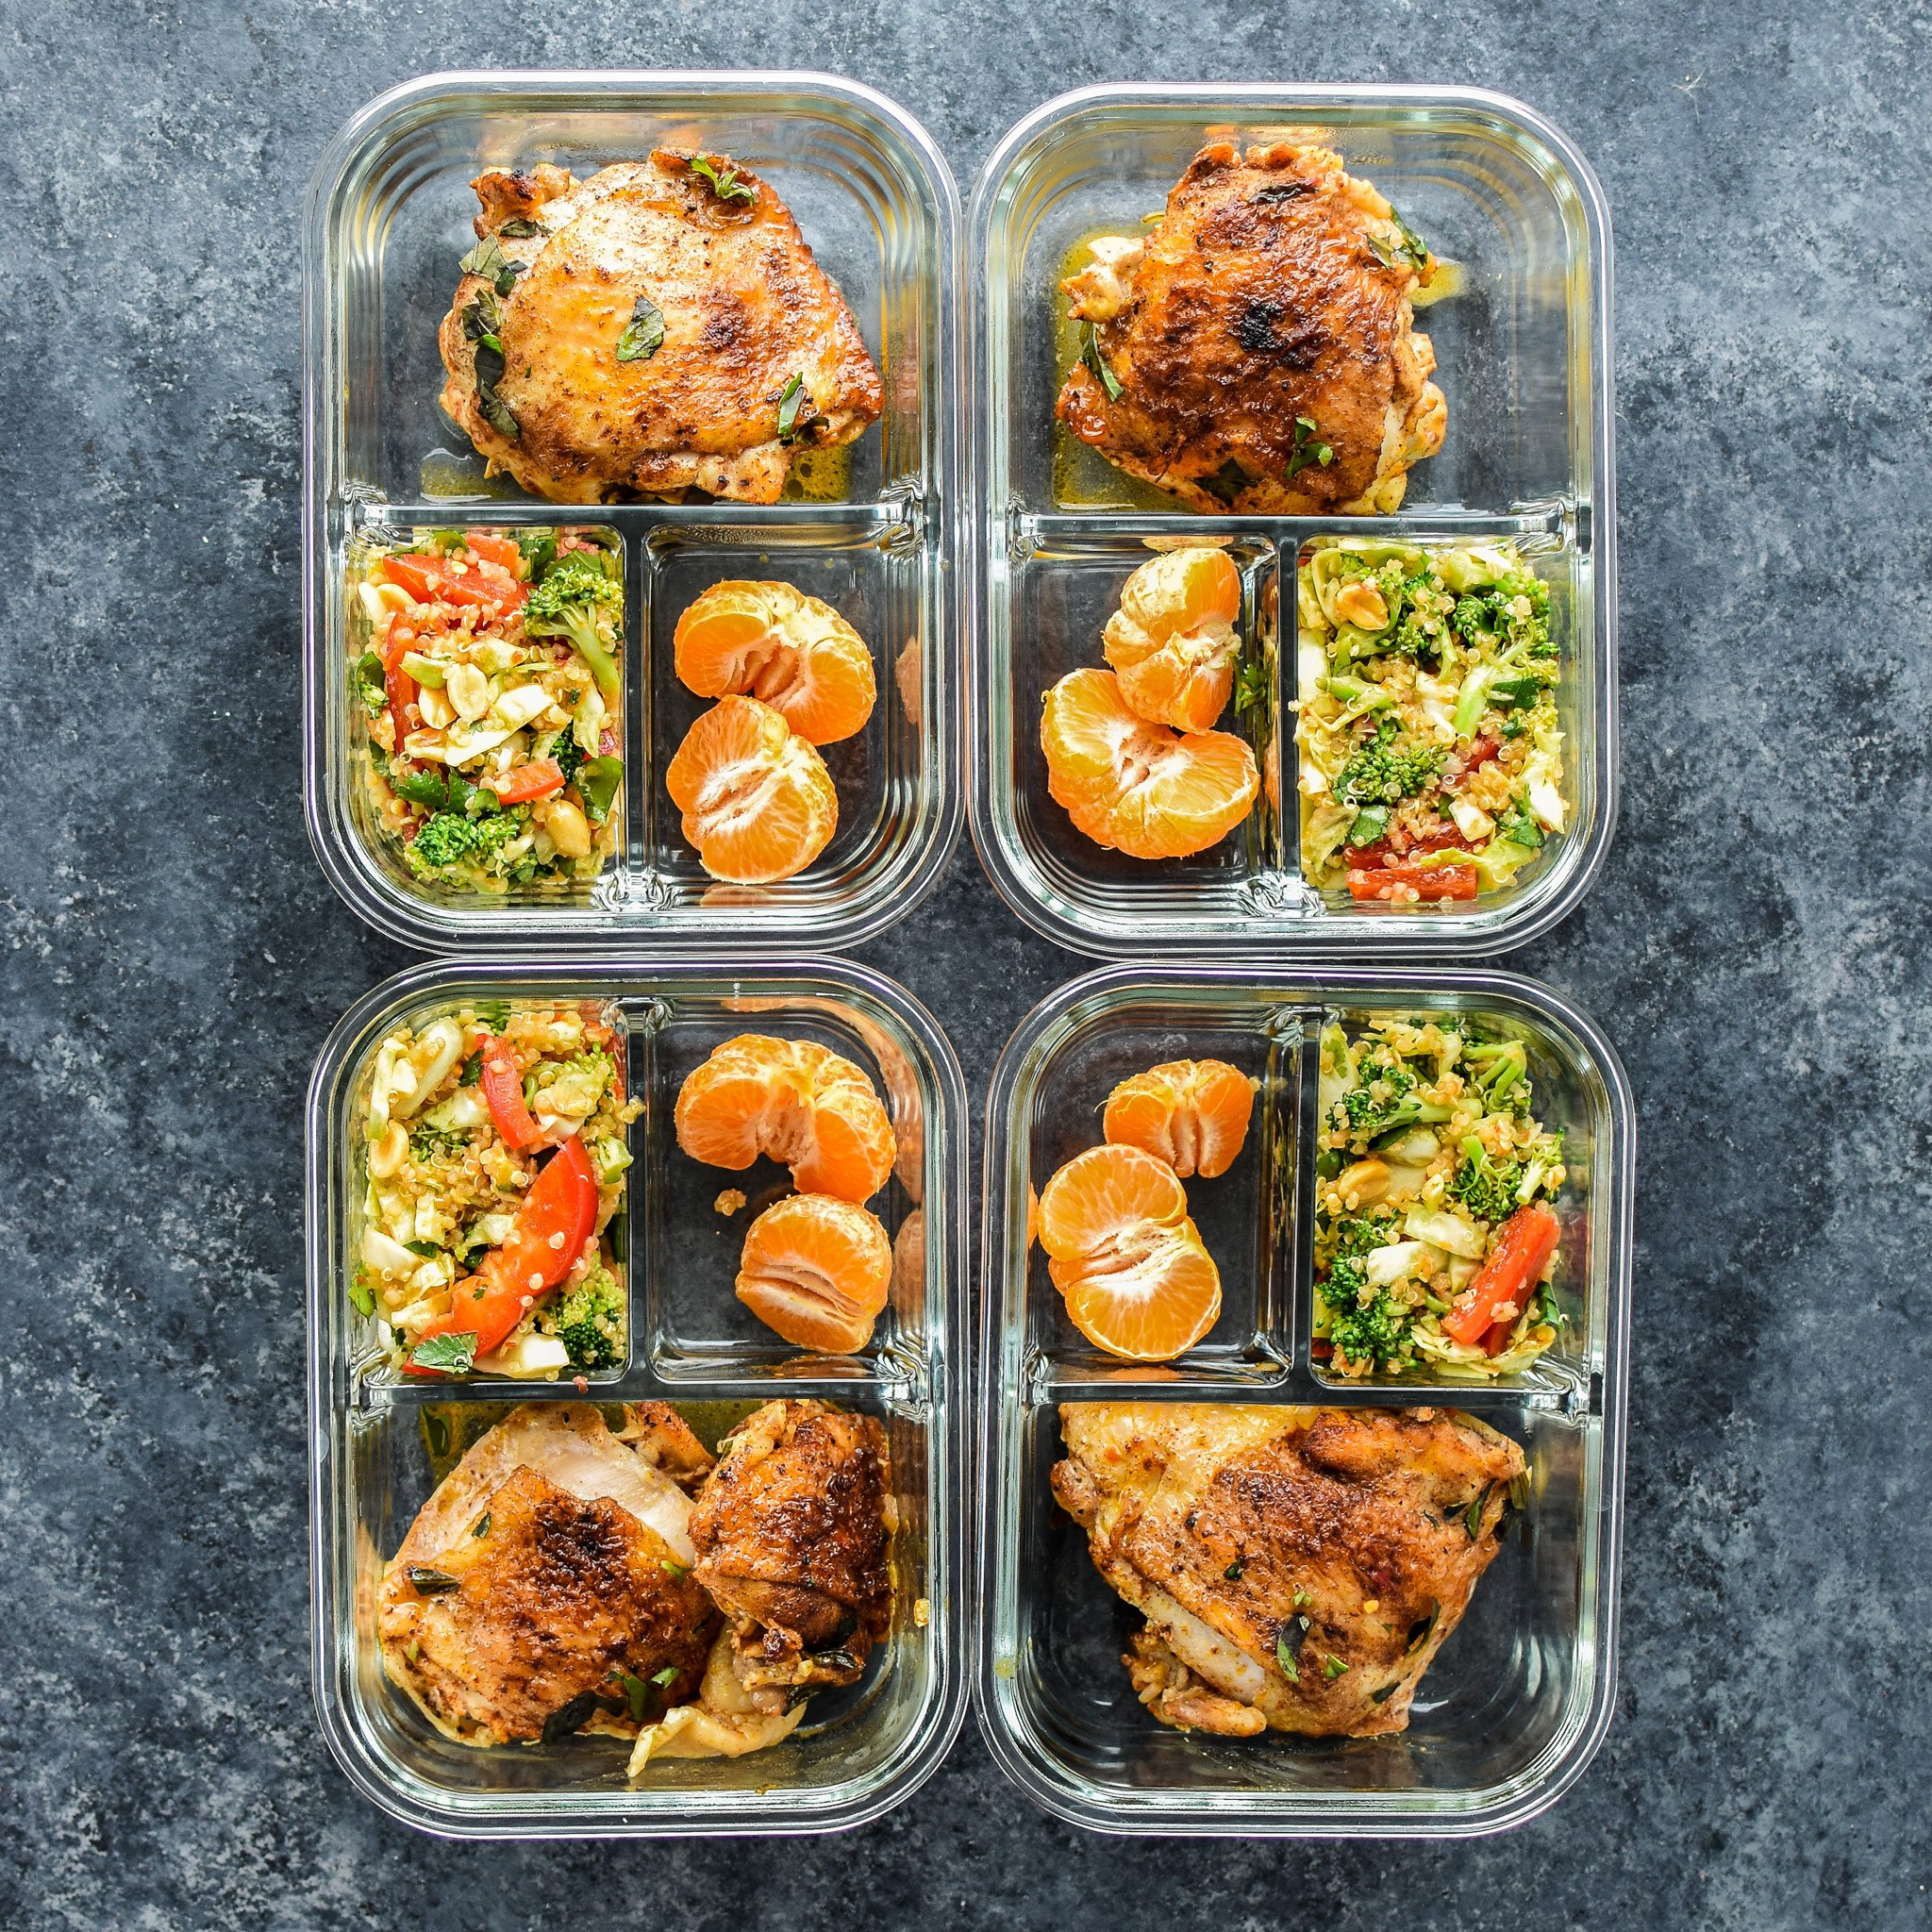 Meal prepped chicken thighs with asian quinoa salad and mandarins.